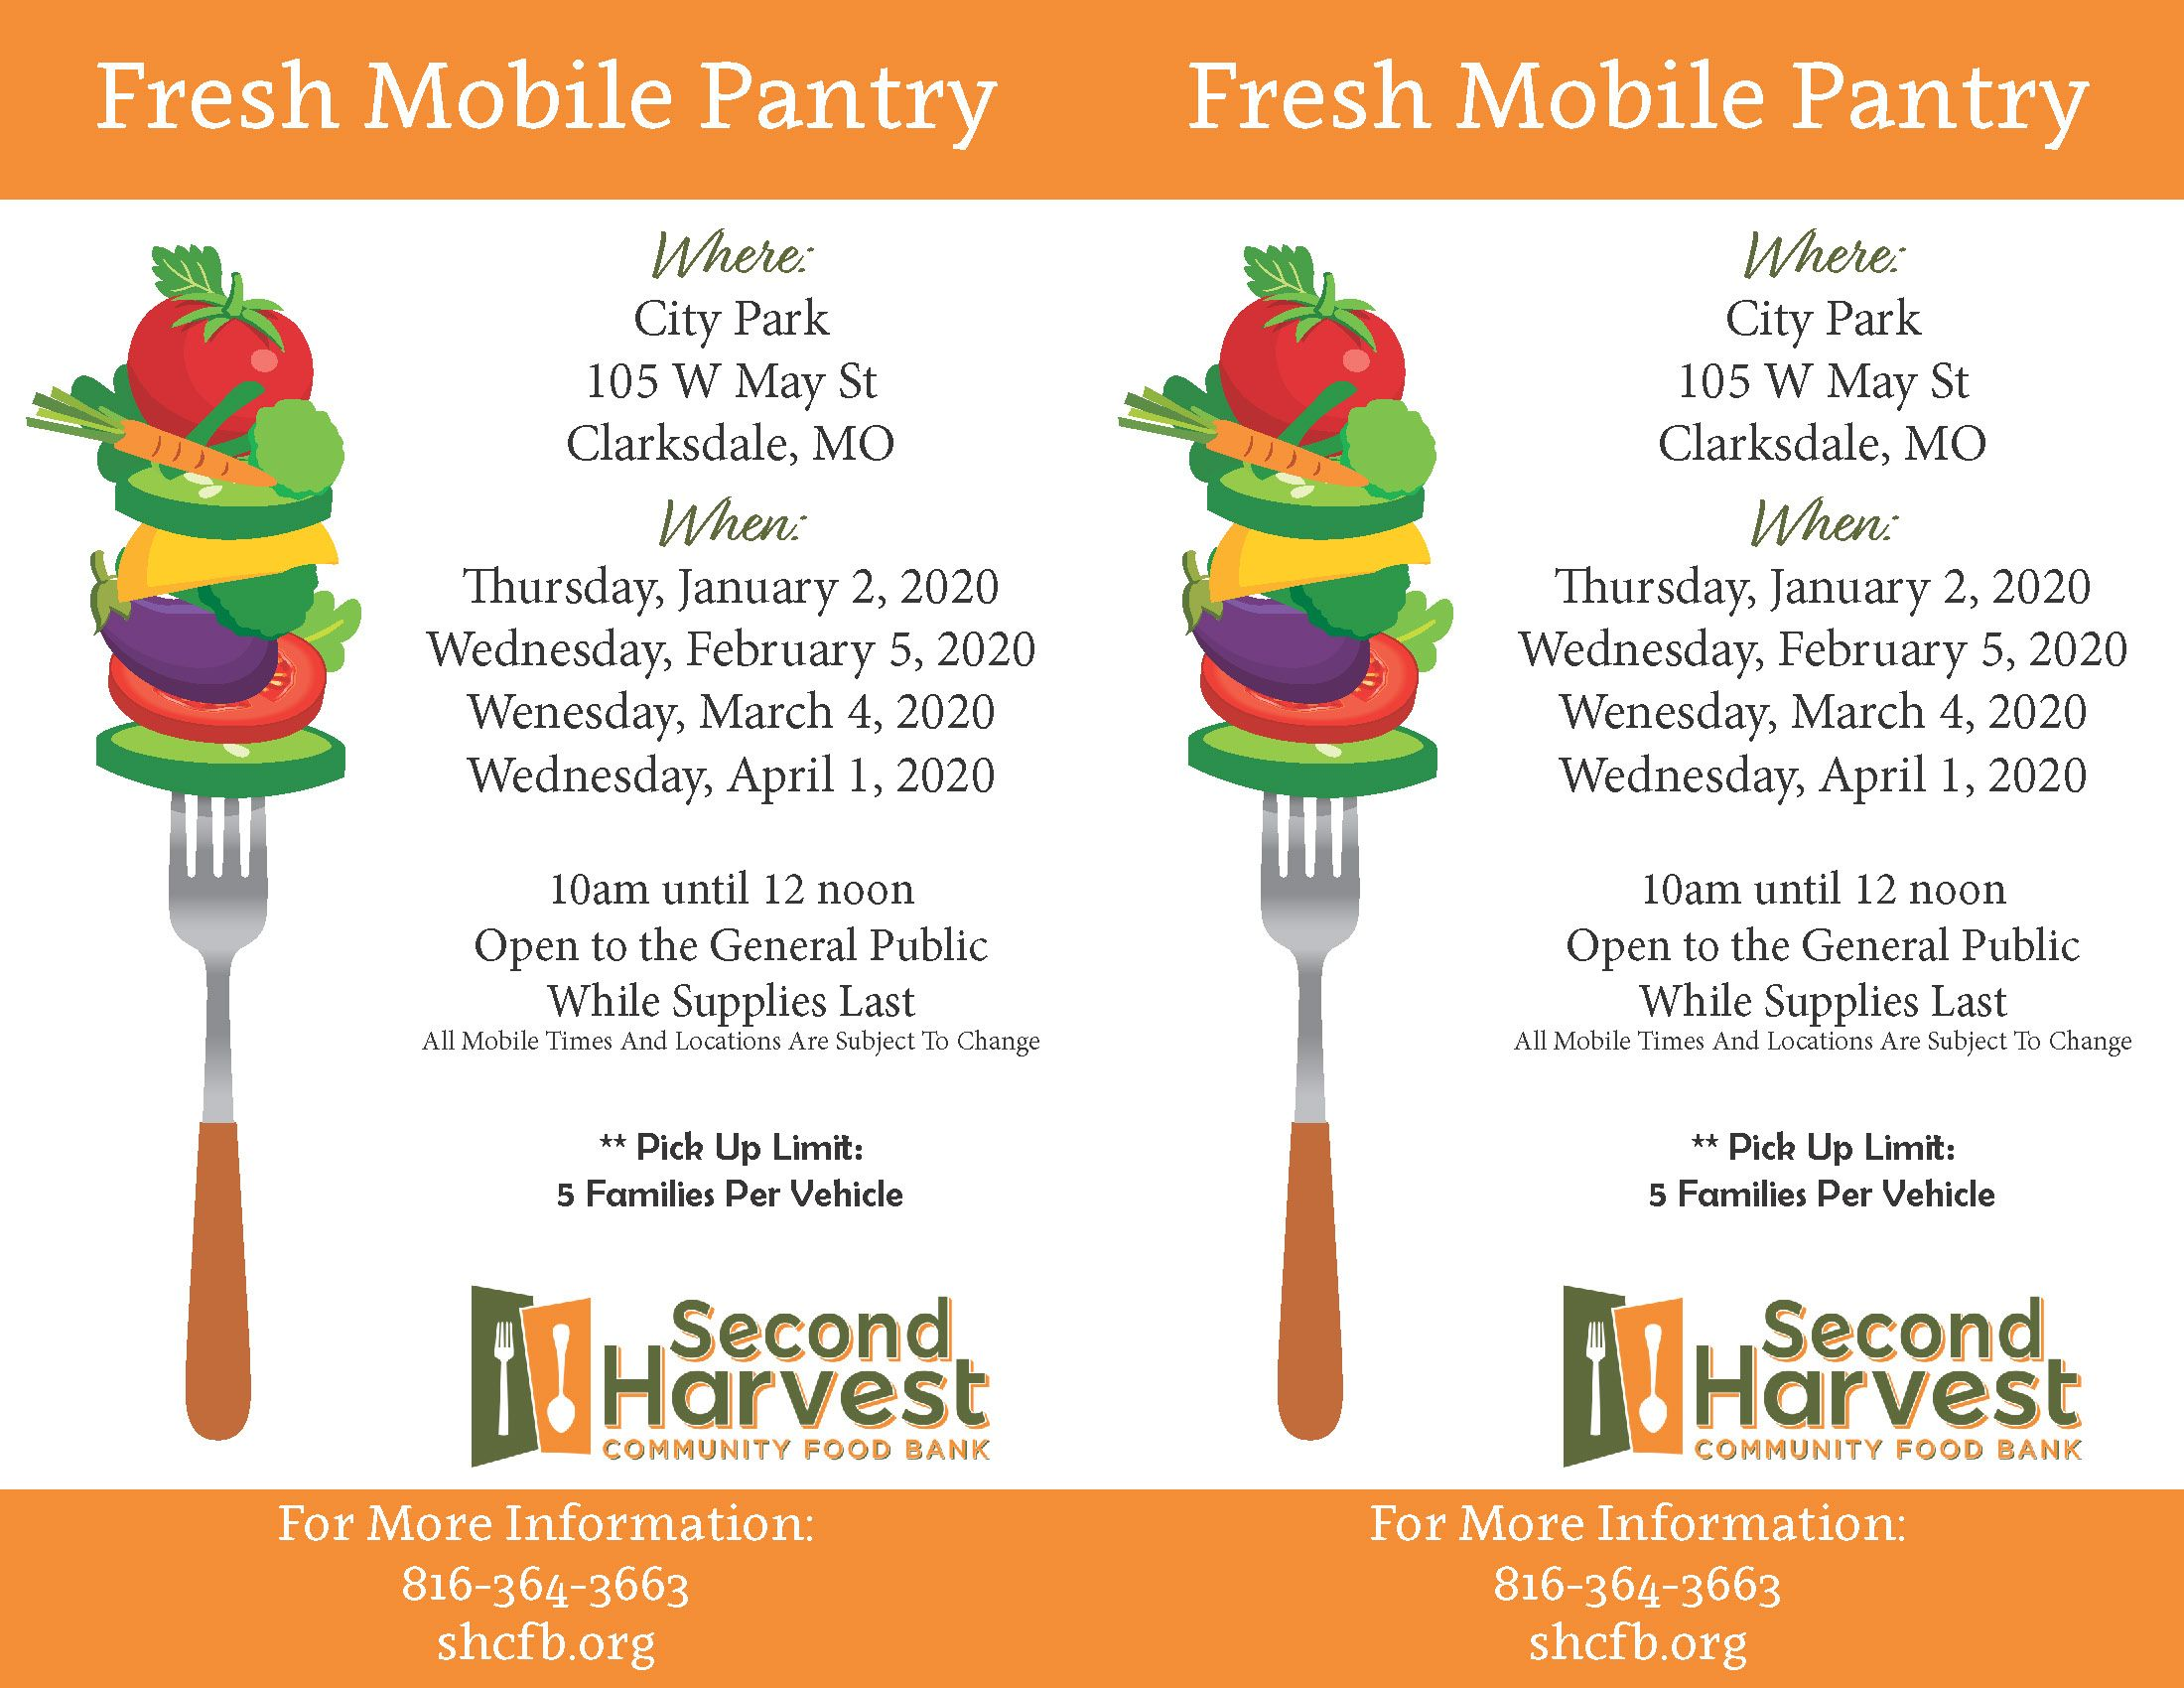 Clarksdale Fresh Mobile Pantry